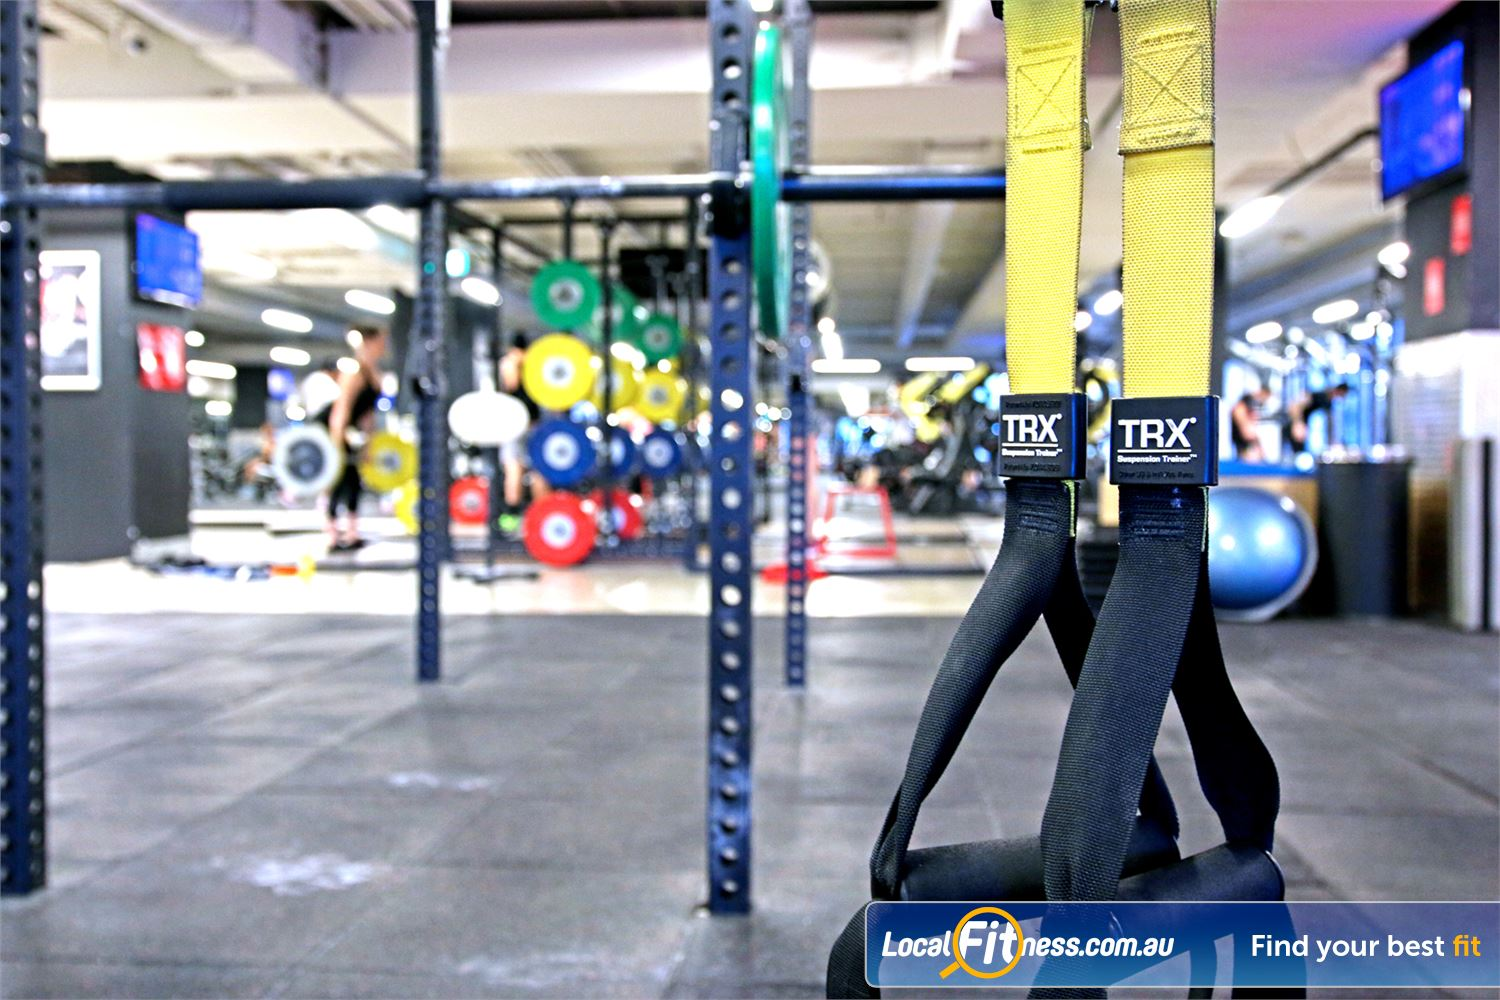 Fitness First Elizabeth St Brisbane Innovative equipment perfect for freestyle and functional training.